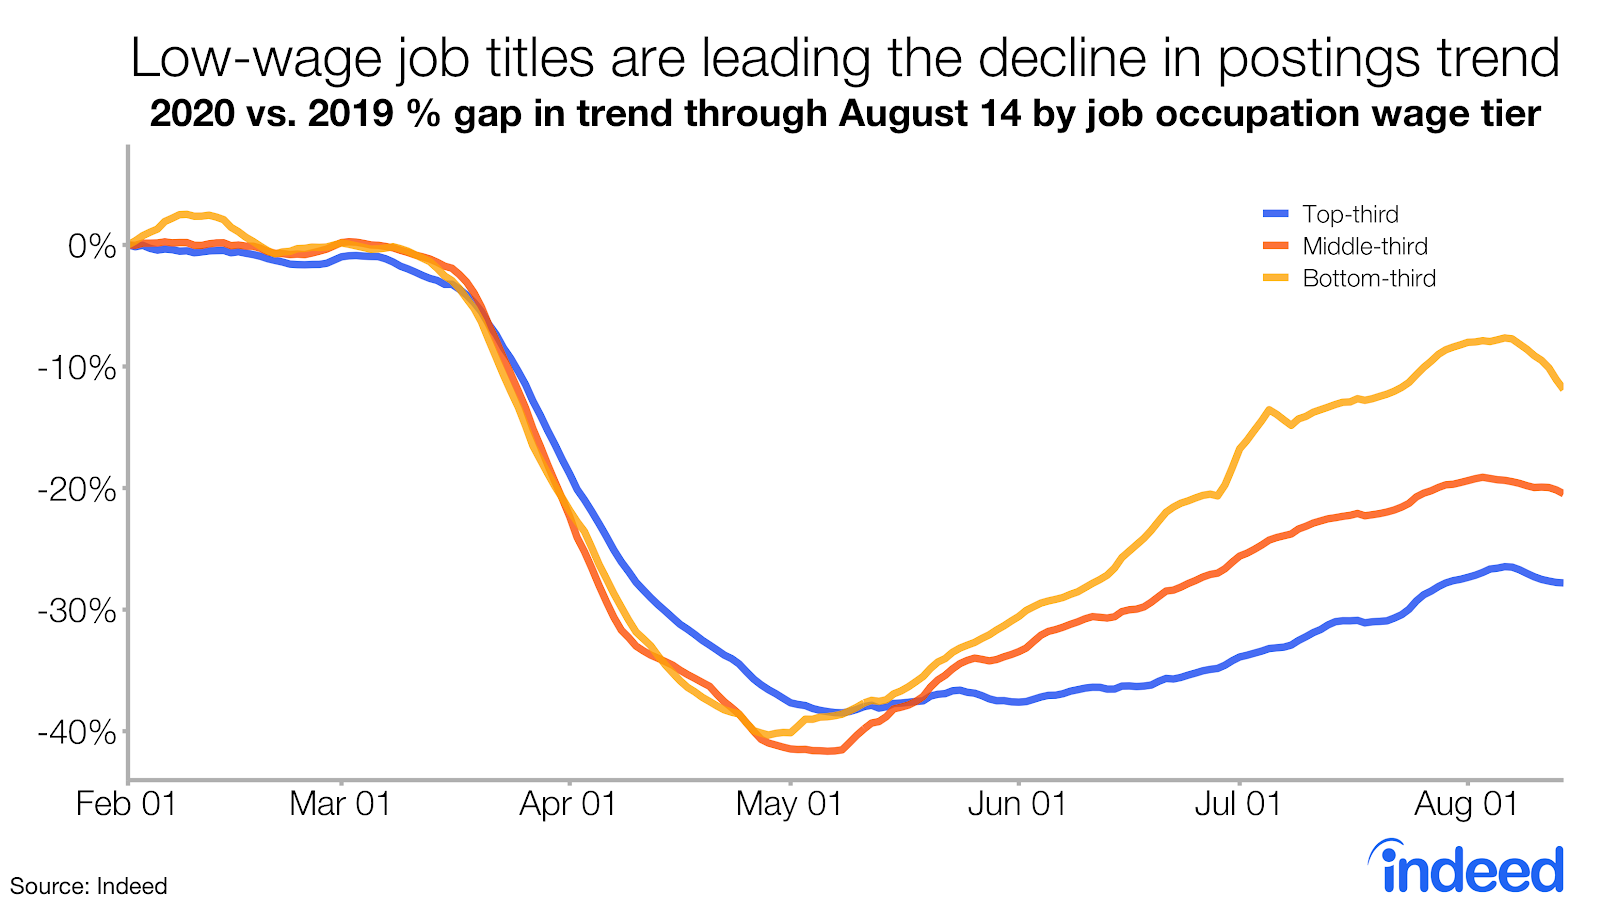 Job titles most in decline since coronavirus are lead by low wage job titles